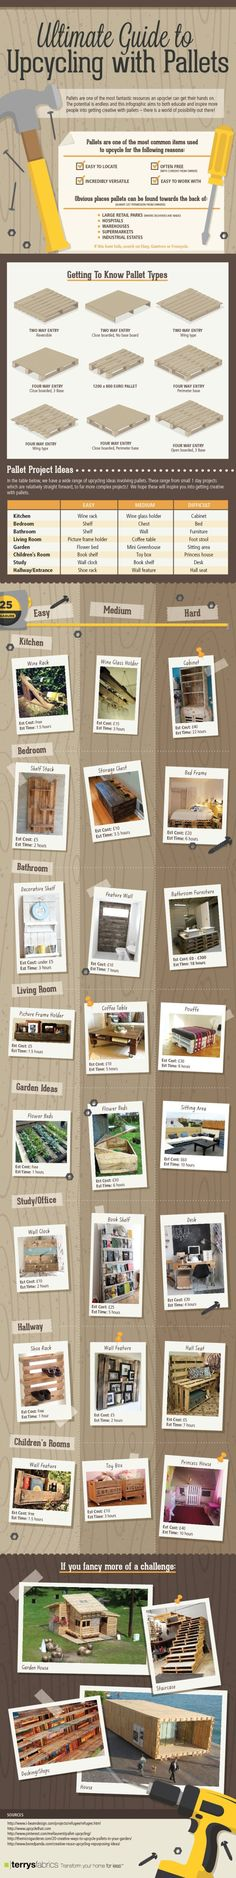 ultimate guide to upcycling with pallets1 Ultimate Guide to Upcycling with Pallets in diy pallet ideas  with Recycled Pallets